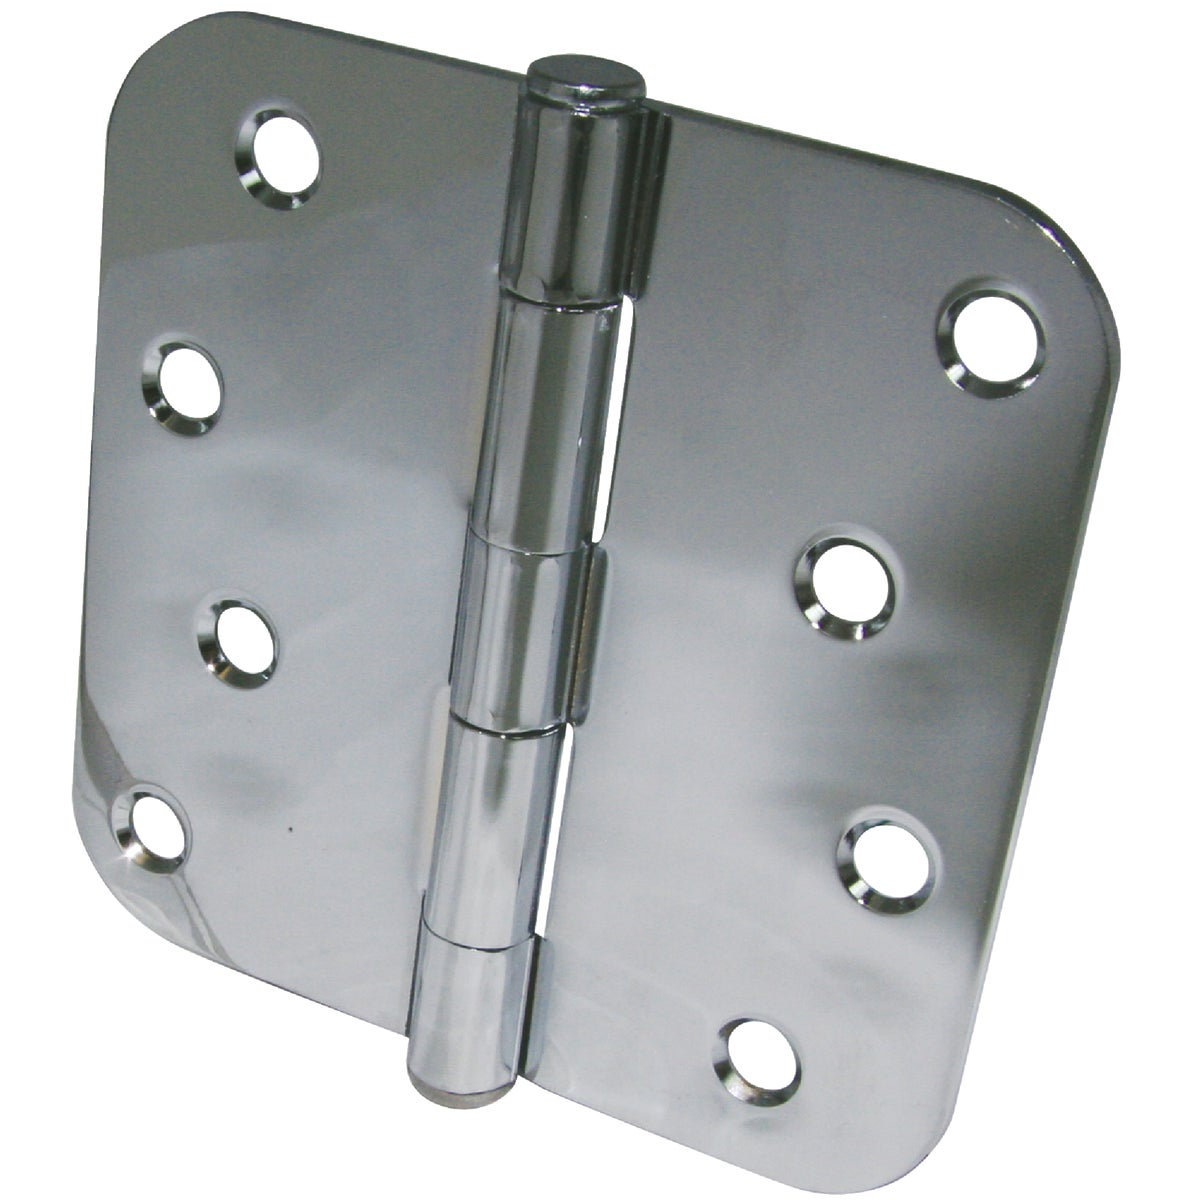 "4"" 5/8"" RAD PC 3PK HINGE - 61754 by Ultra Hardware"